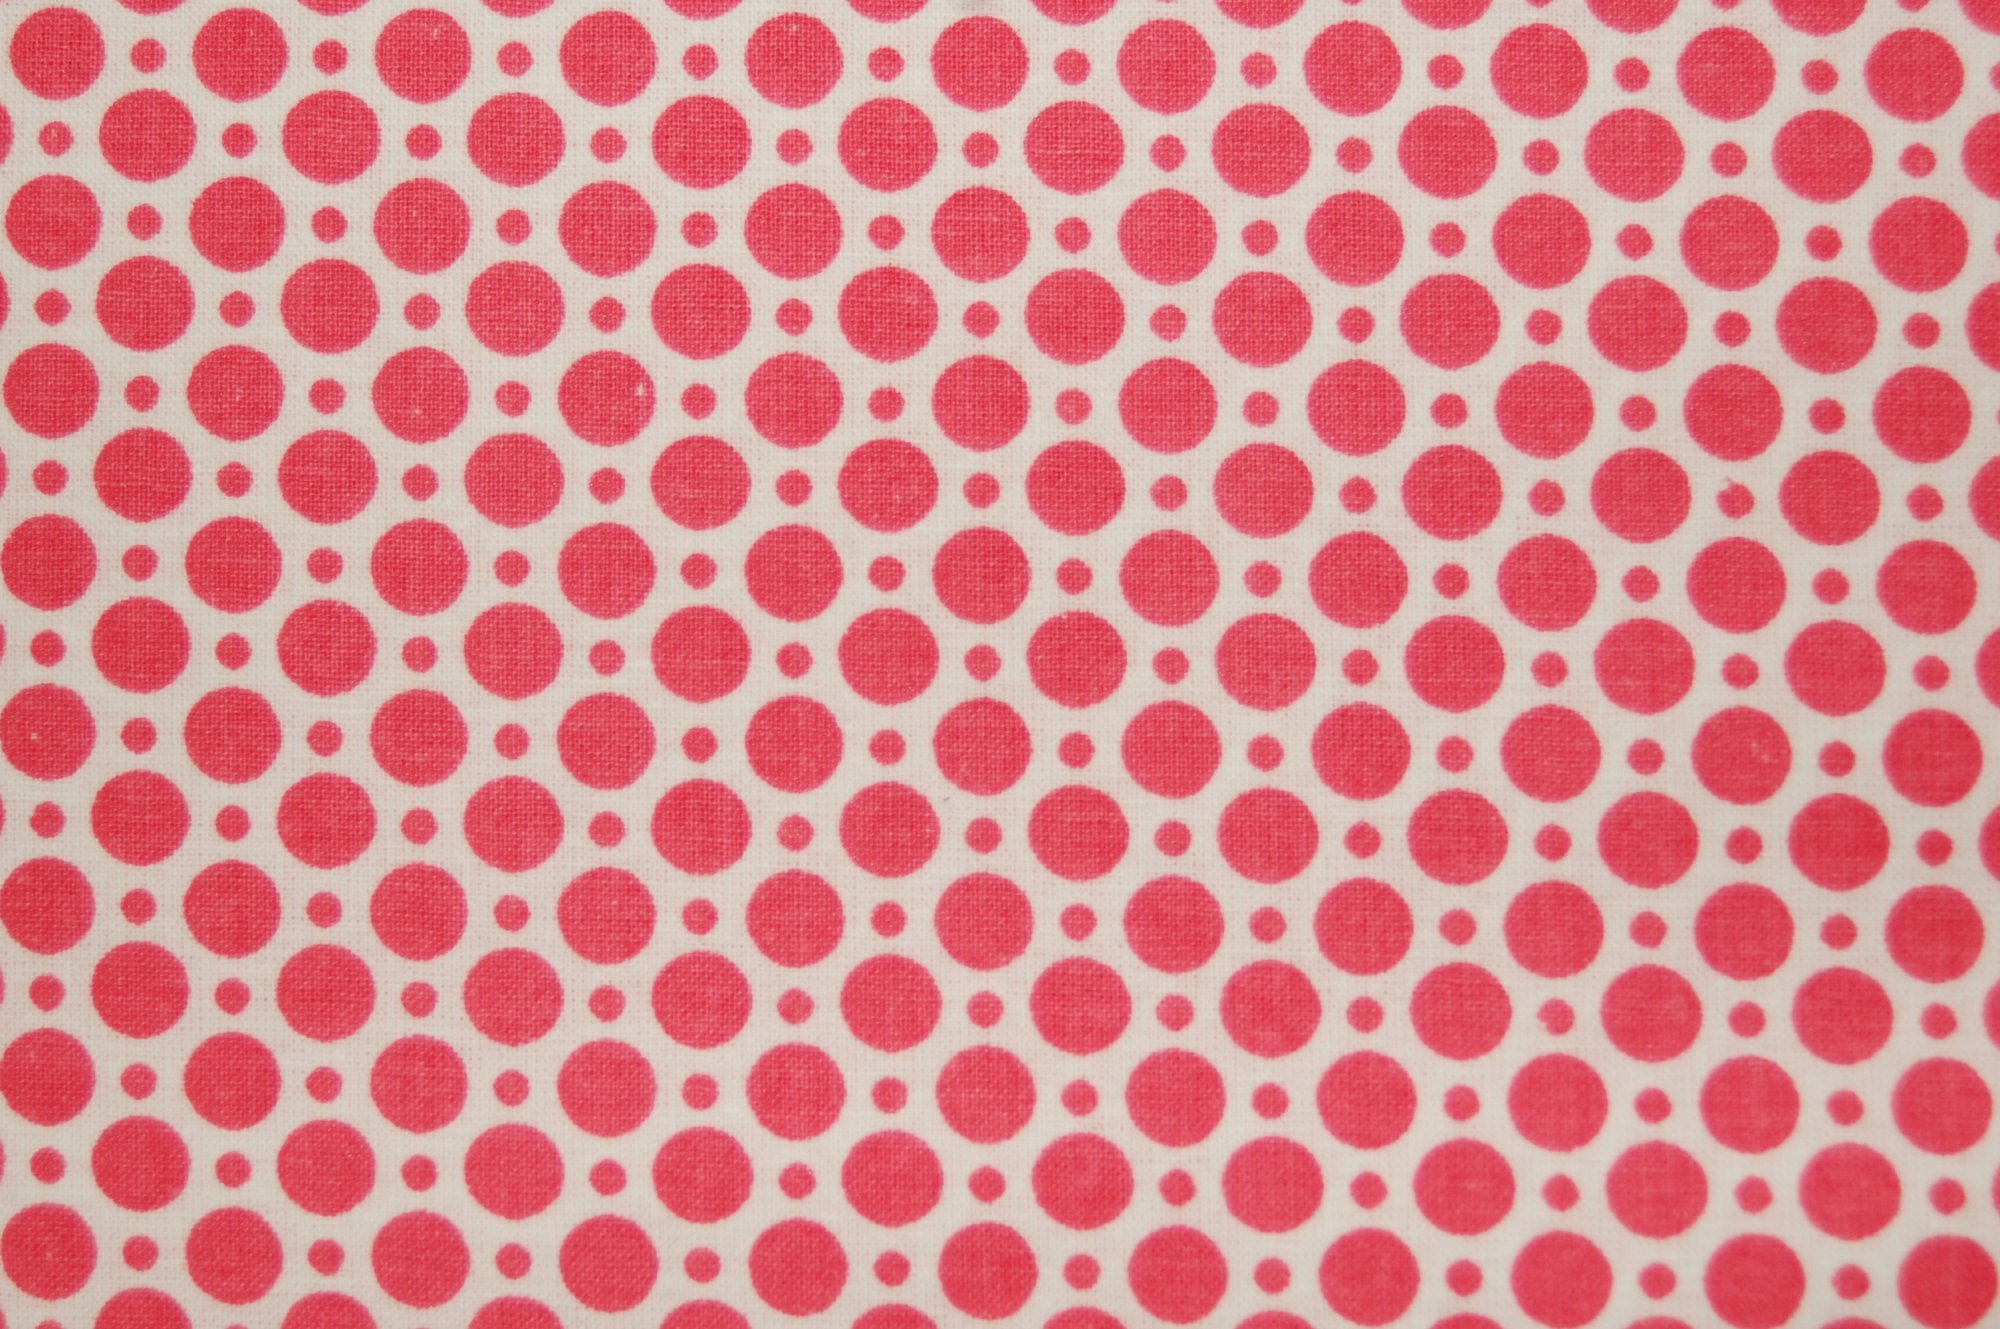 Fabric Traditions Dot Matrix (Coral) by Foust Textiles